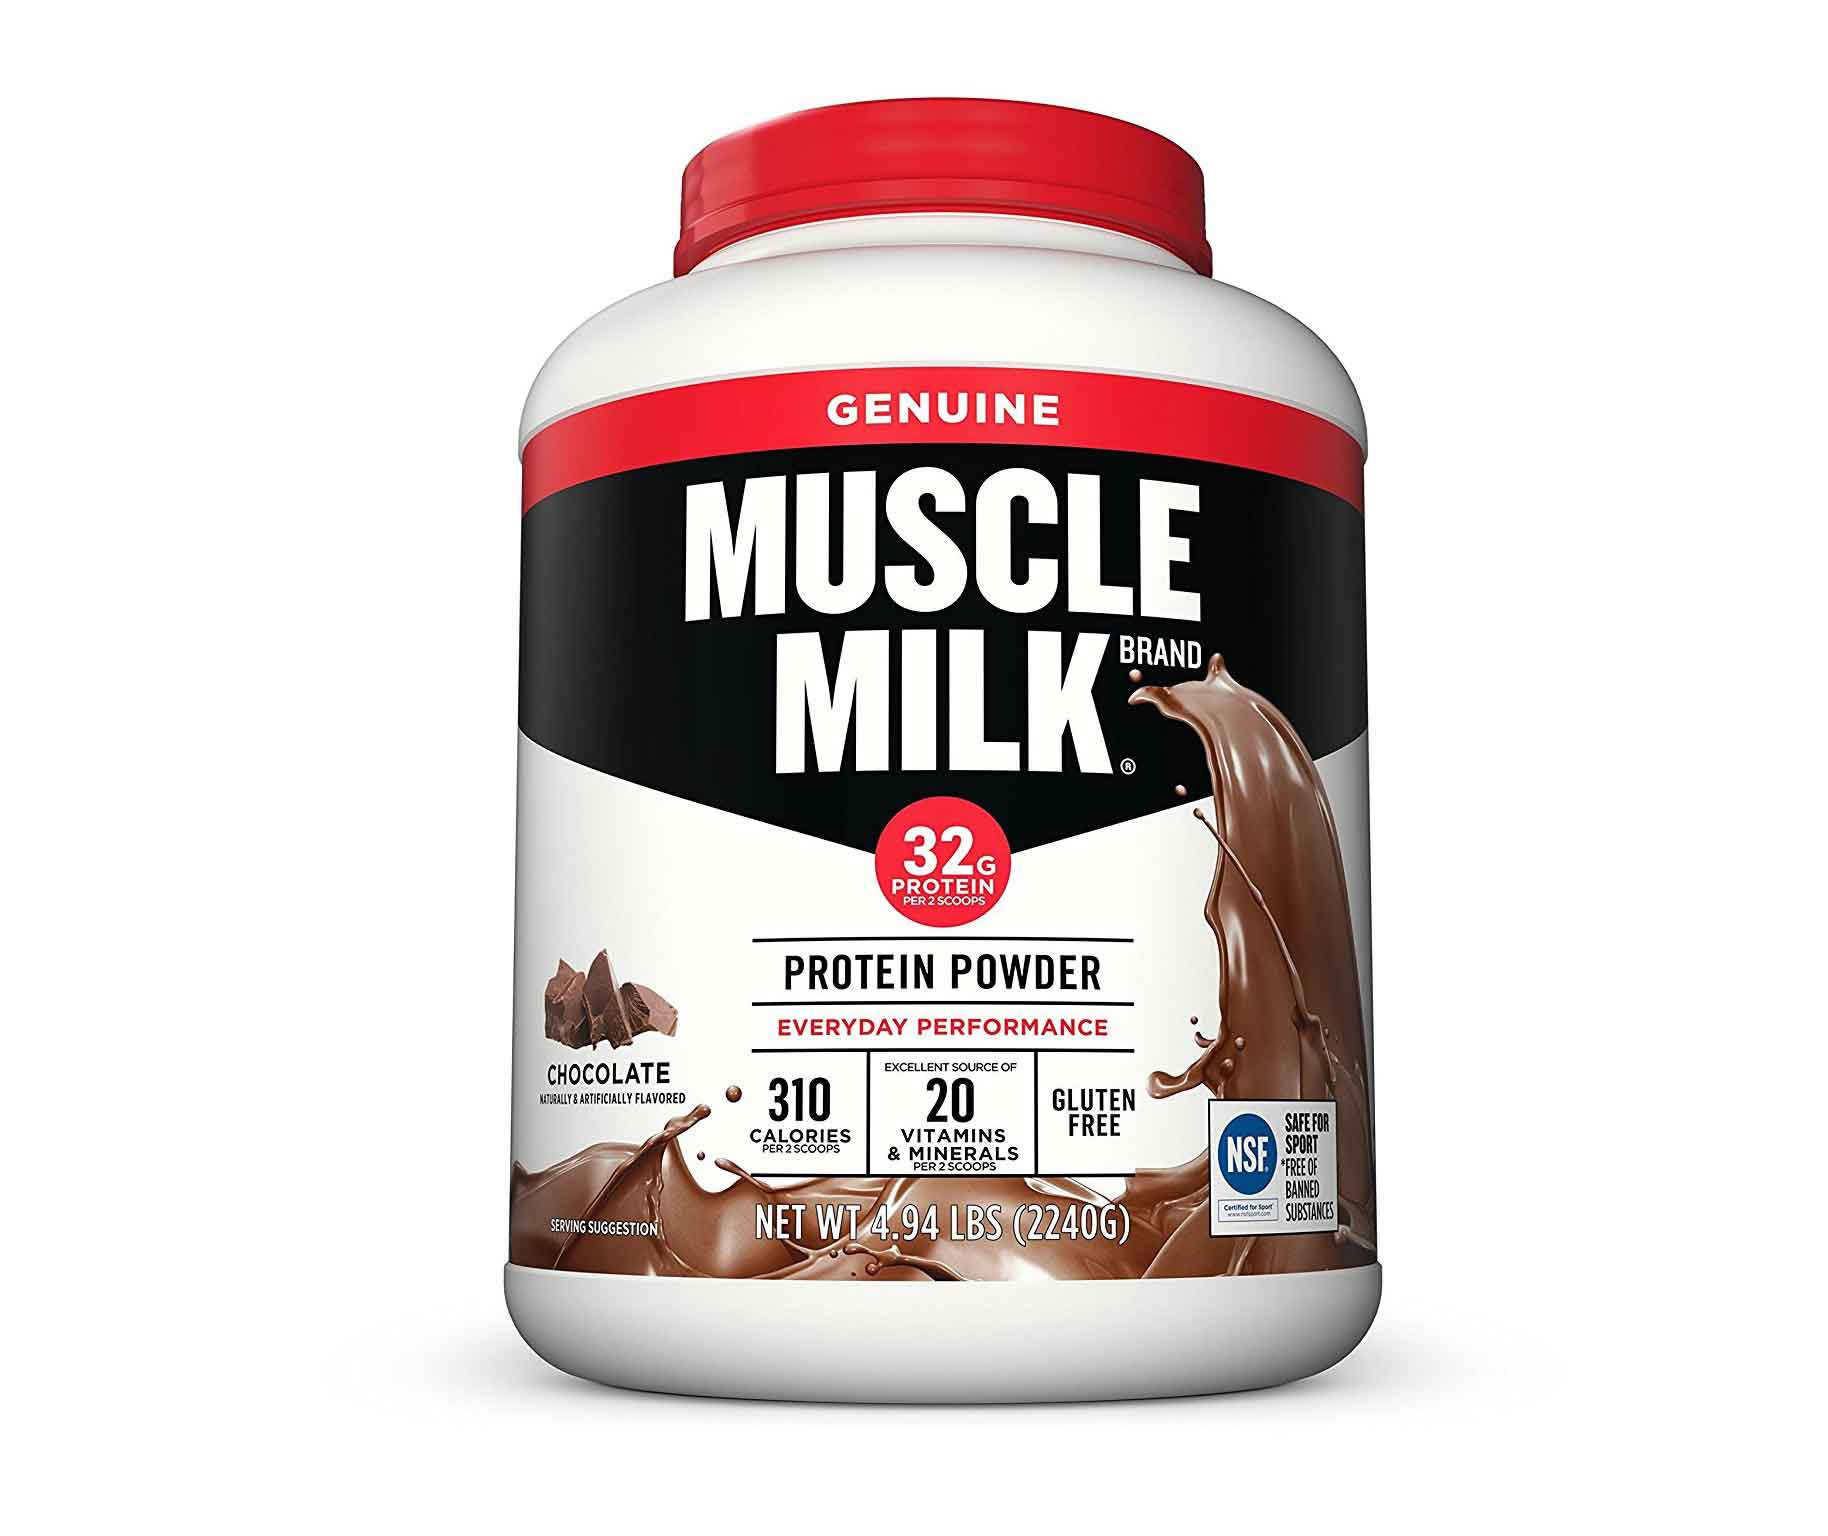 Price of muscle milk